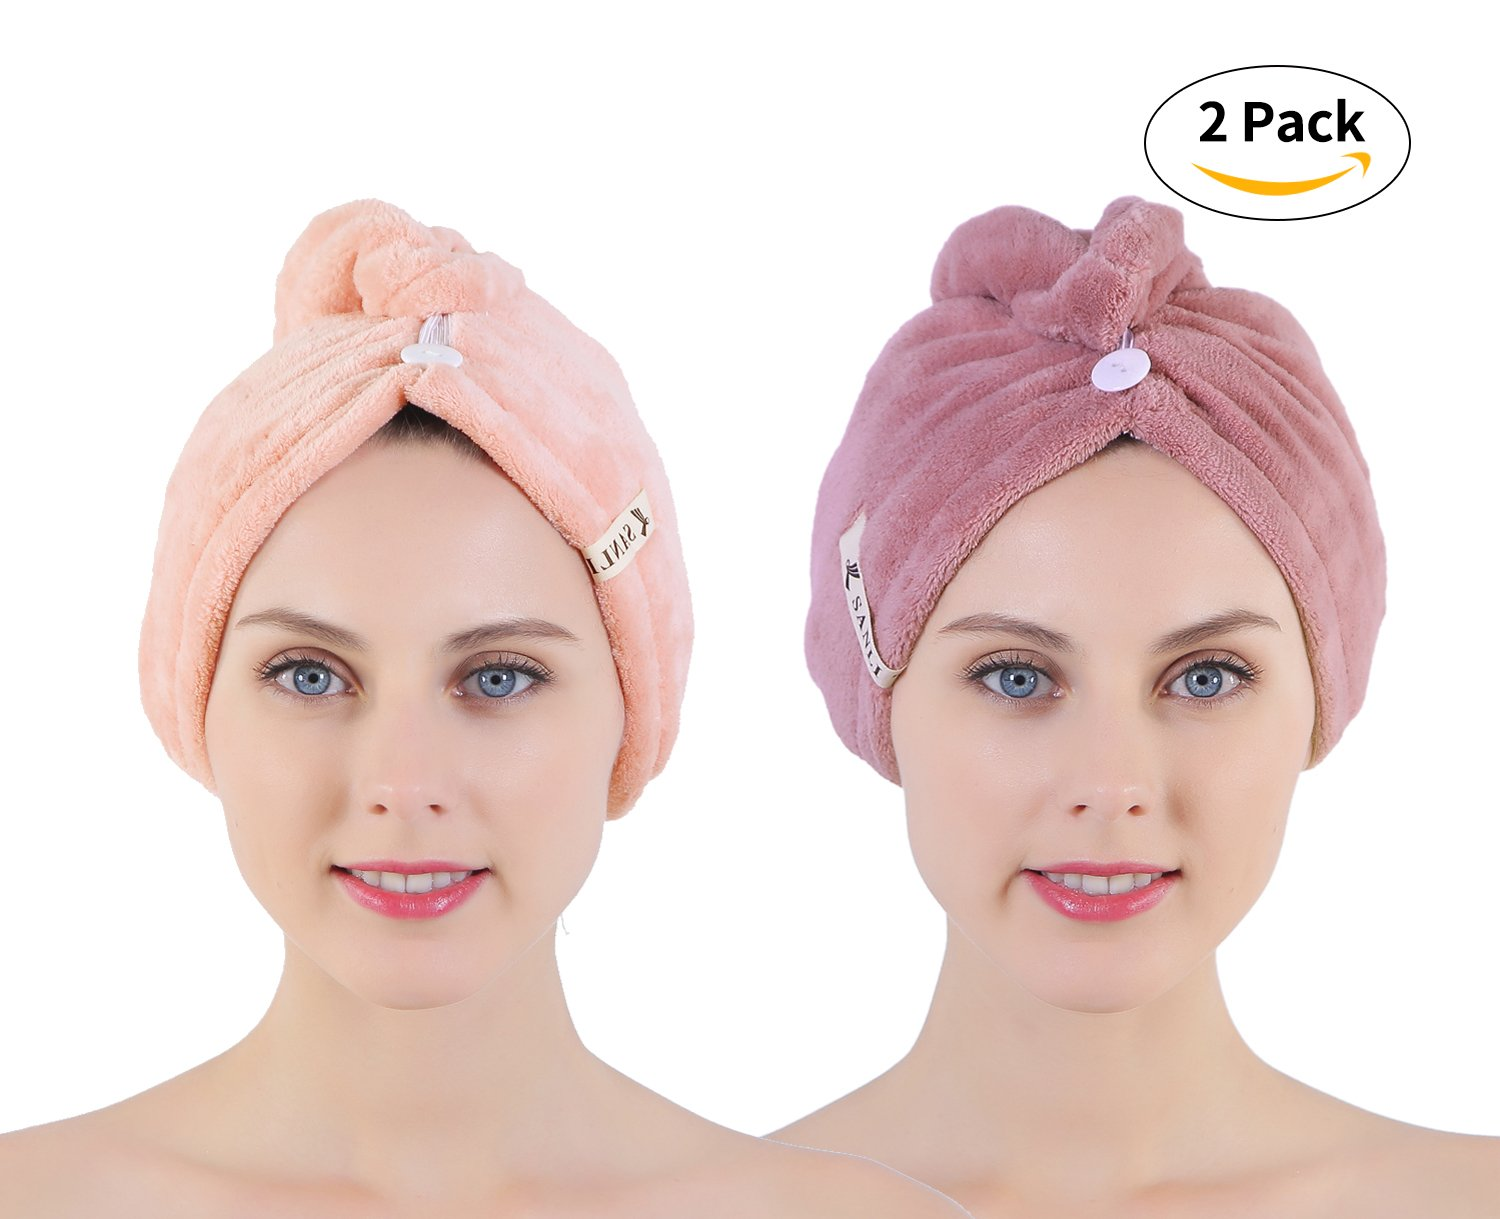 2 Pack Microfiber Hair Twist Towel Double Layer Designed Super Absorbent & Fast Drying Turban Wrap for Women Girls by Sanli (light orange+purple)